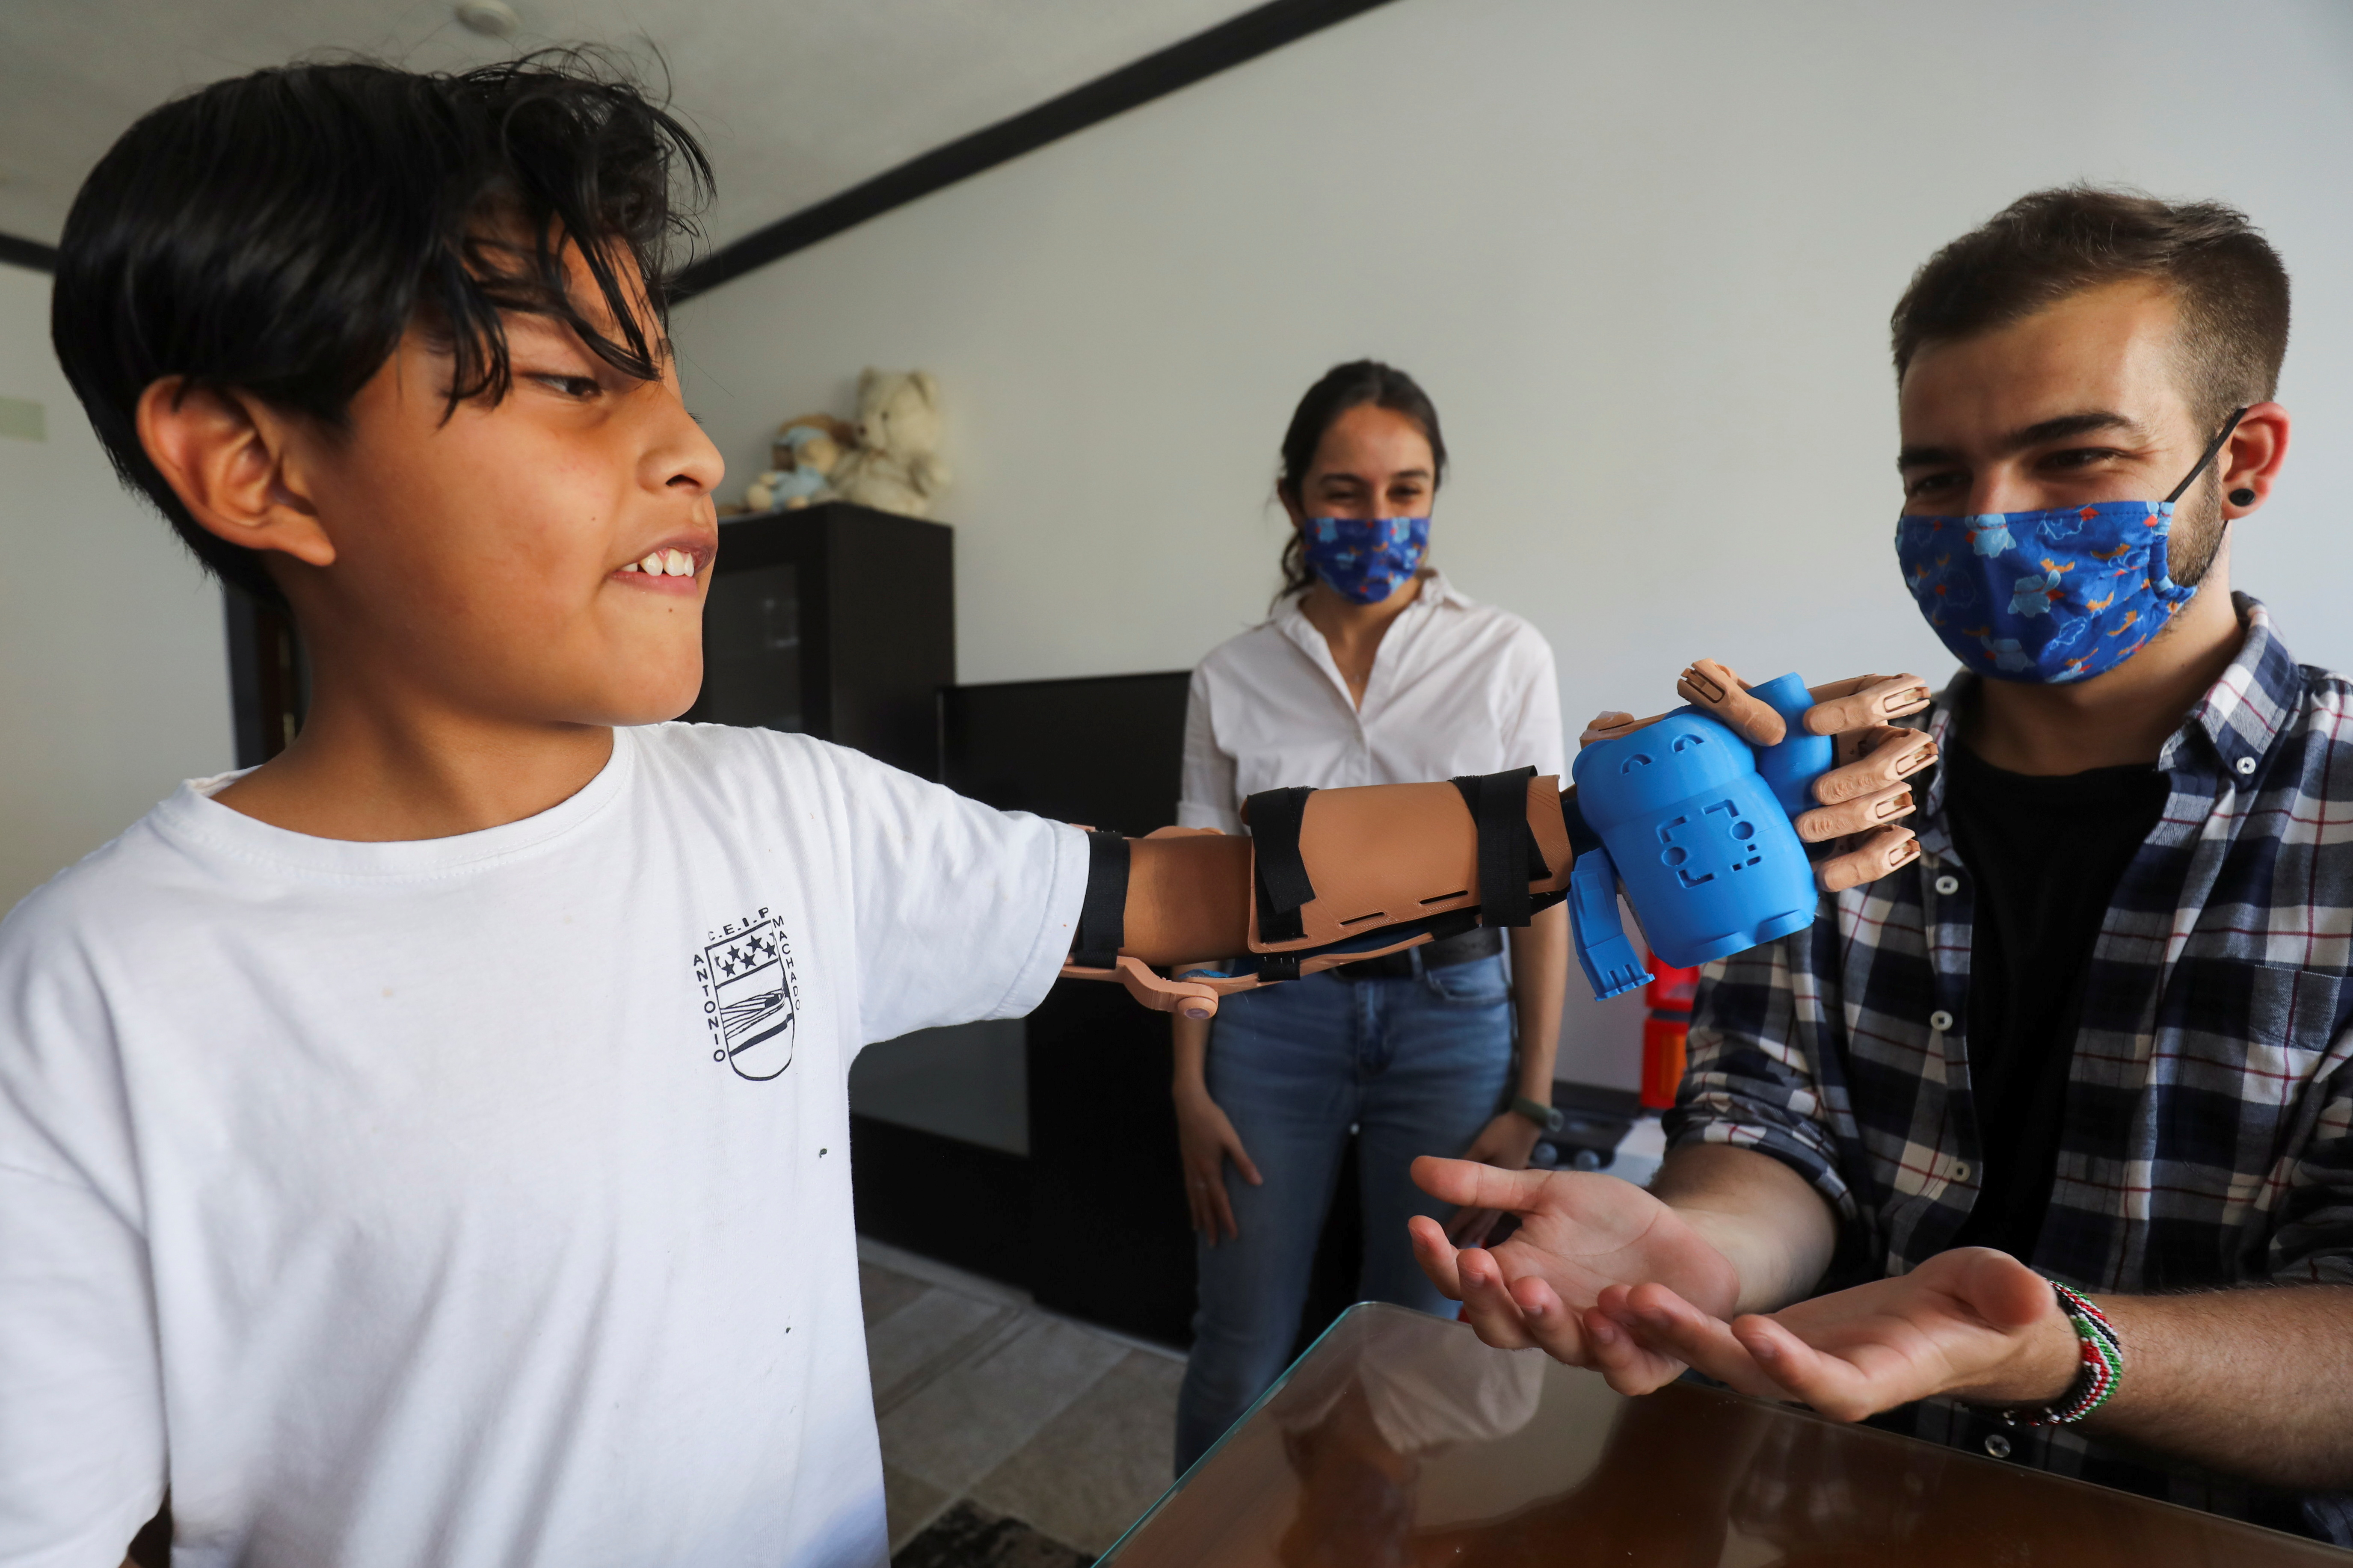 Juan Moyolema, an 8-year-old boy who was born missing the lower part of his left arm, picks a toy up with a 3D printed tailor-made prosthetic beside Guillermo Martinez, founder of Madrid-base social entity Ayudame3D, at their home in Parla, near Madrid, Spain, May 18, 2021. Picture taken May 18, 2021. REUTERS/Sergio Perez